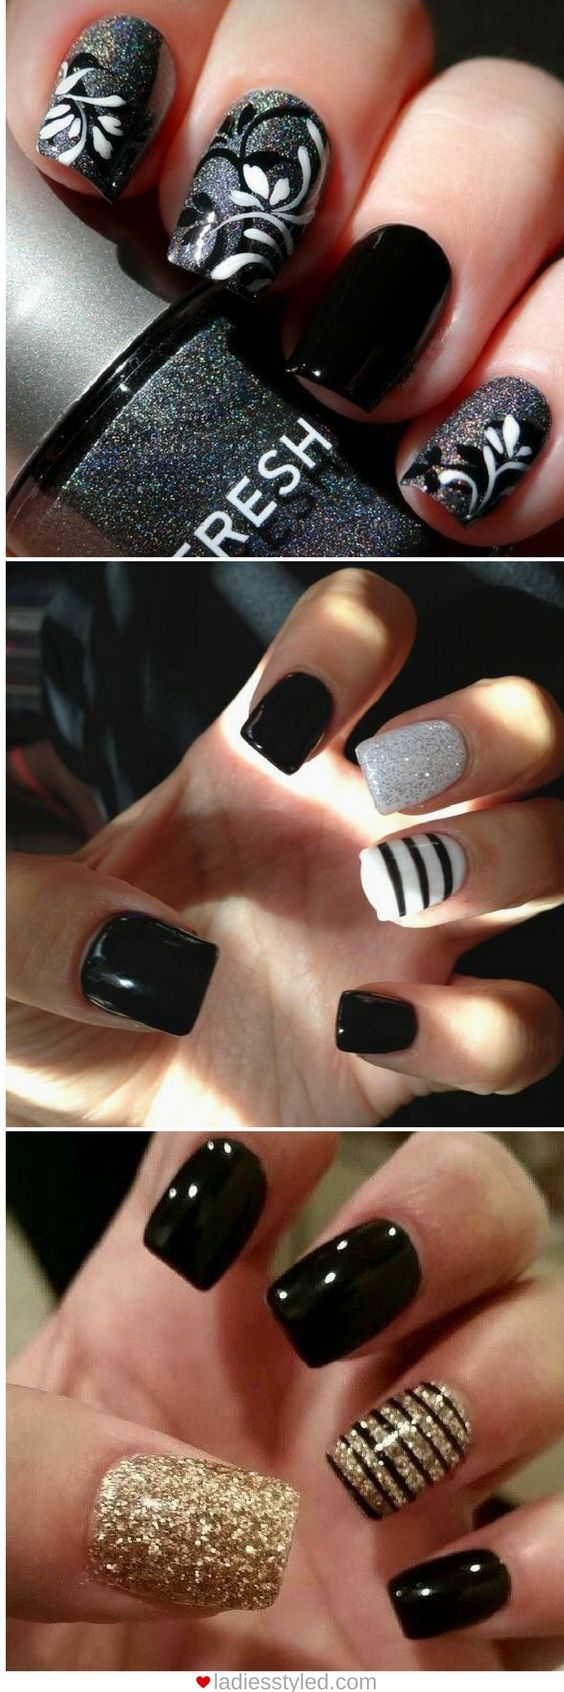 get inspired with these beautiful nail art designs and ideas ...